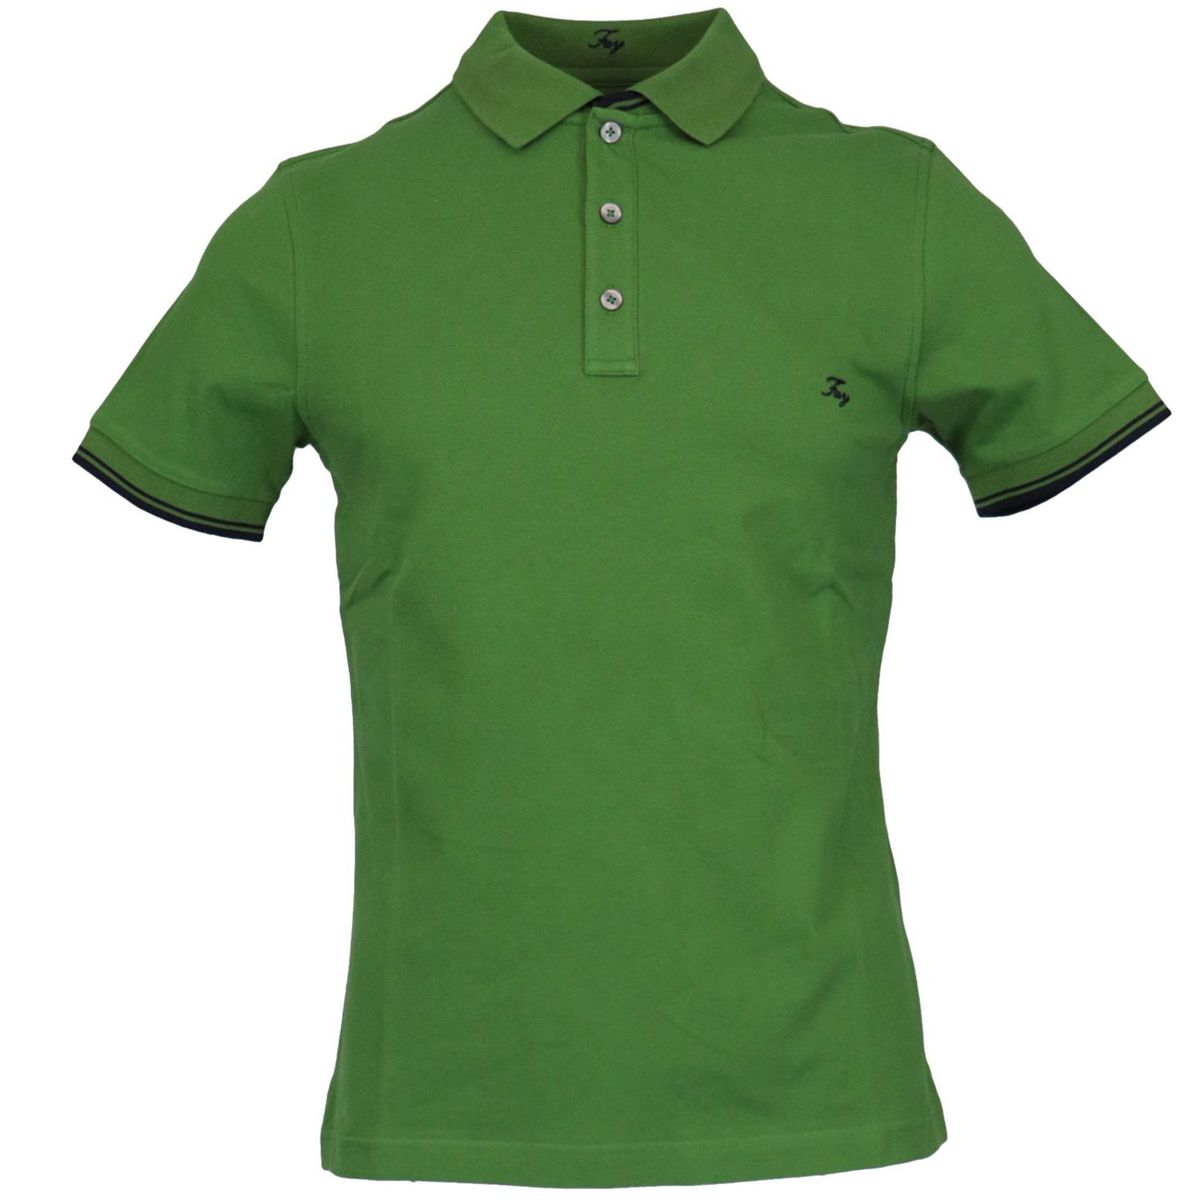 Stretch cotton polo shirt with logo embroidery Meadow Fay